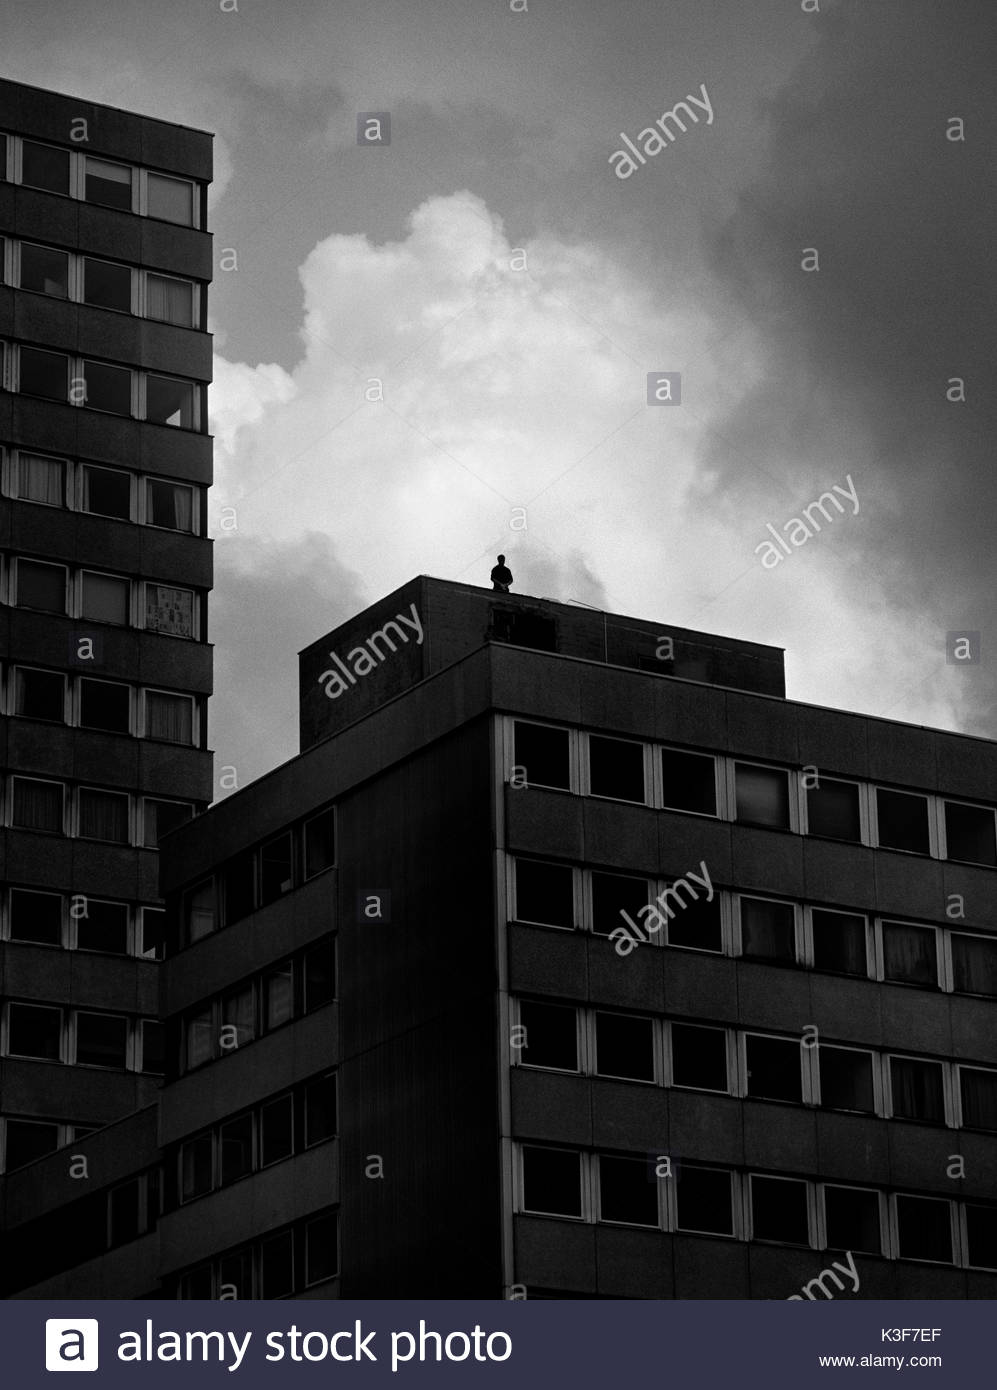 Silhouette of Man Standing on Roof of Building - Stock Image